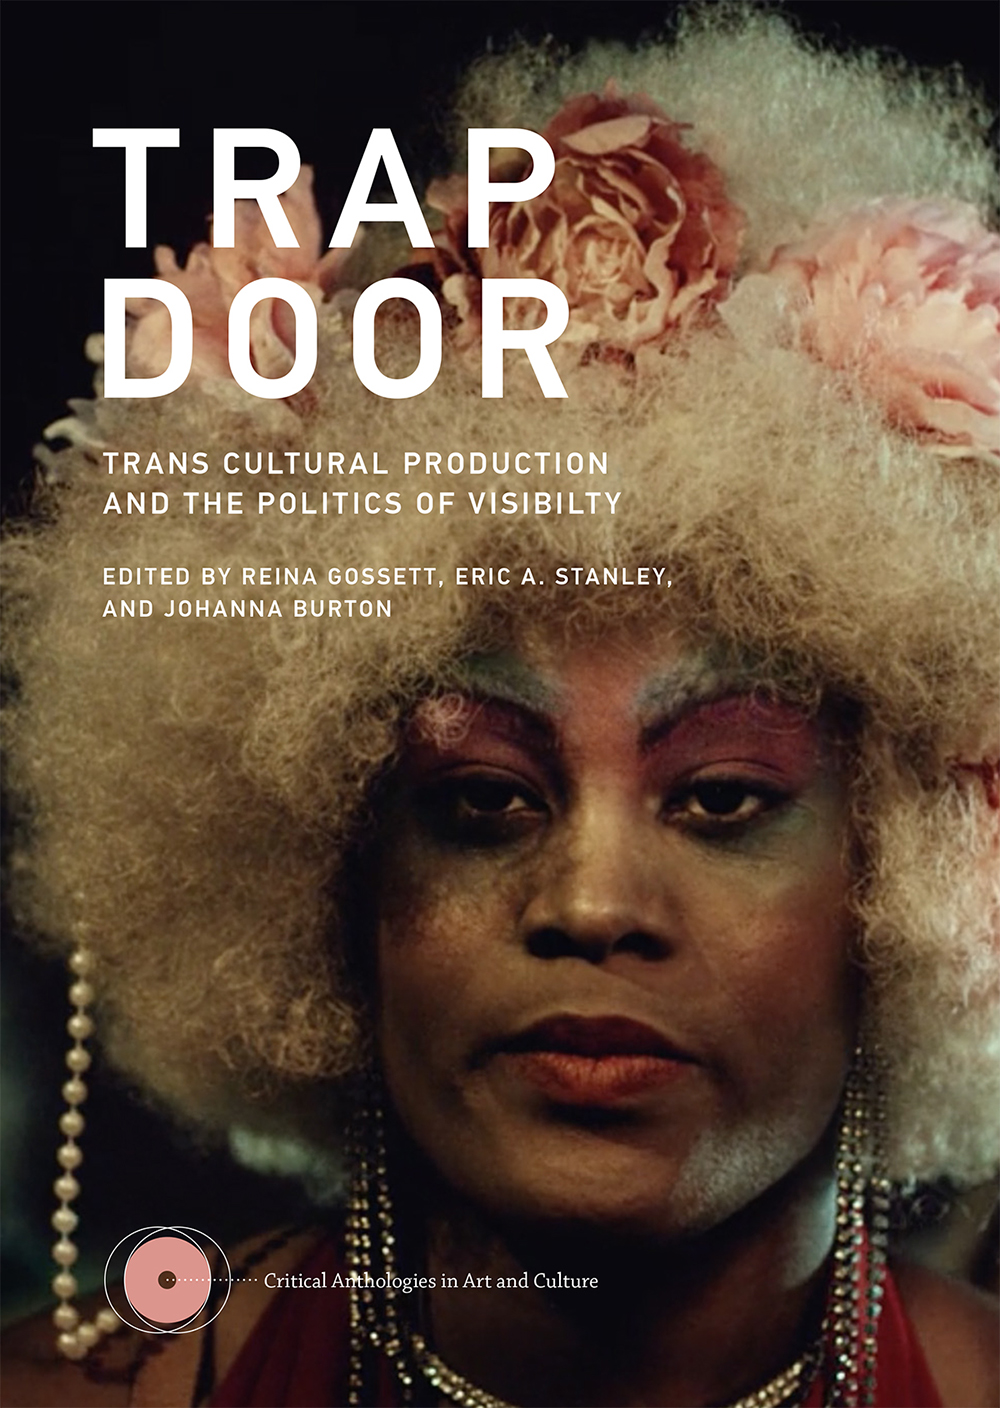 Cover of Trap Door: Trans Cultural Production and the Politics of Visibility, edited by Reina Gossett, Eric A. Stanley, and Johanna Burton.